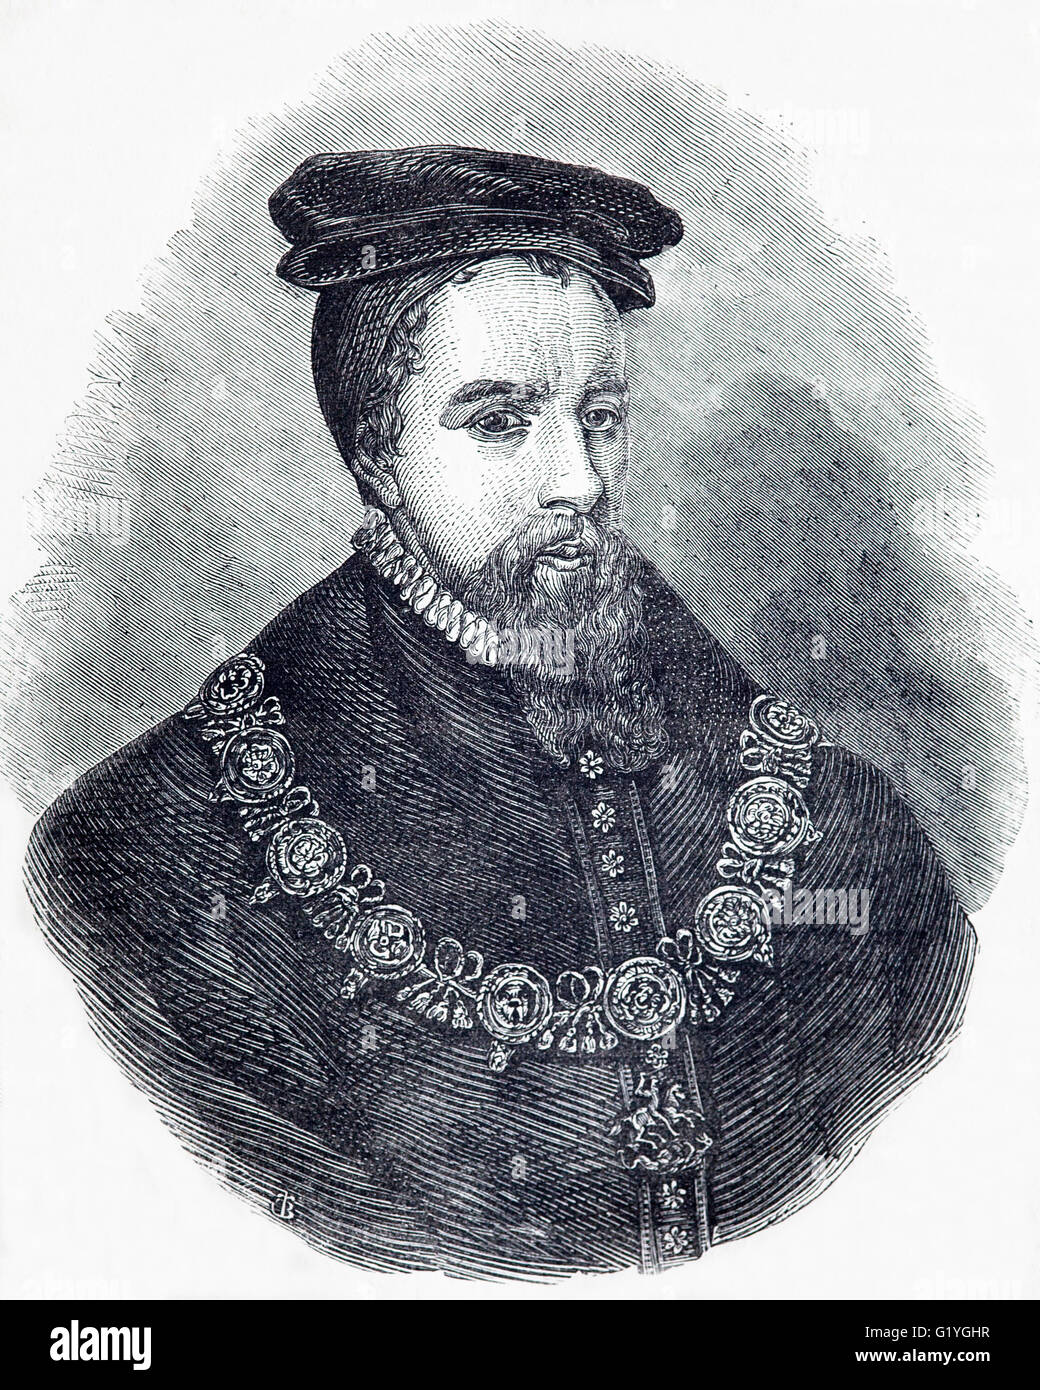 Thomas Stanley, 1st Earl of Derby, (1435 - 1504),  English nobleman and stepfather to King Henry VII of England. Stock Photo